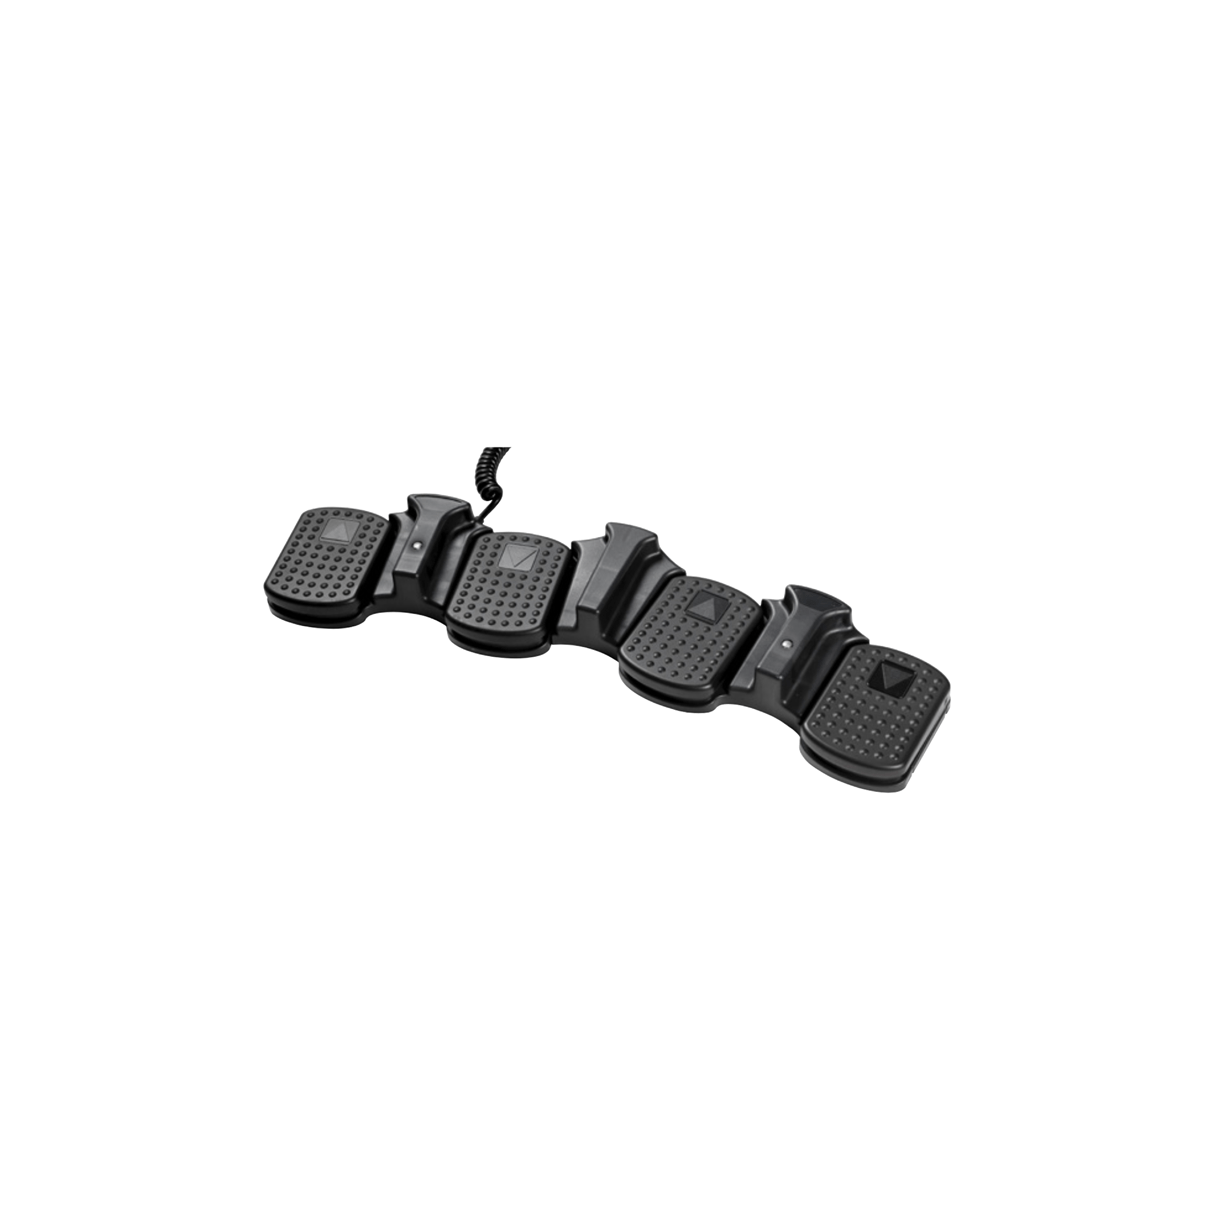 footswitch dewert dual